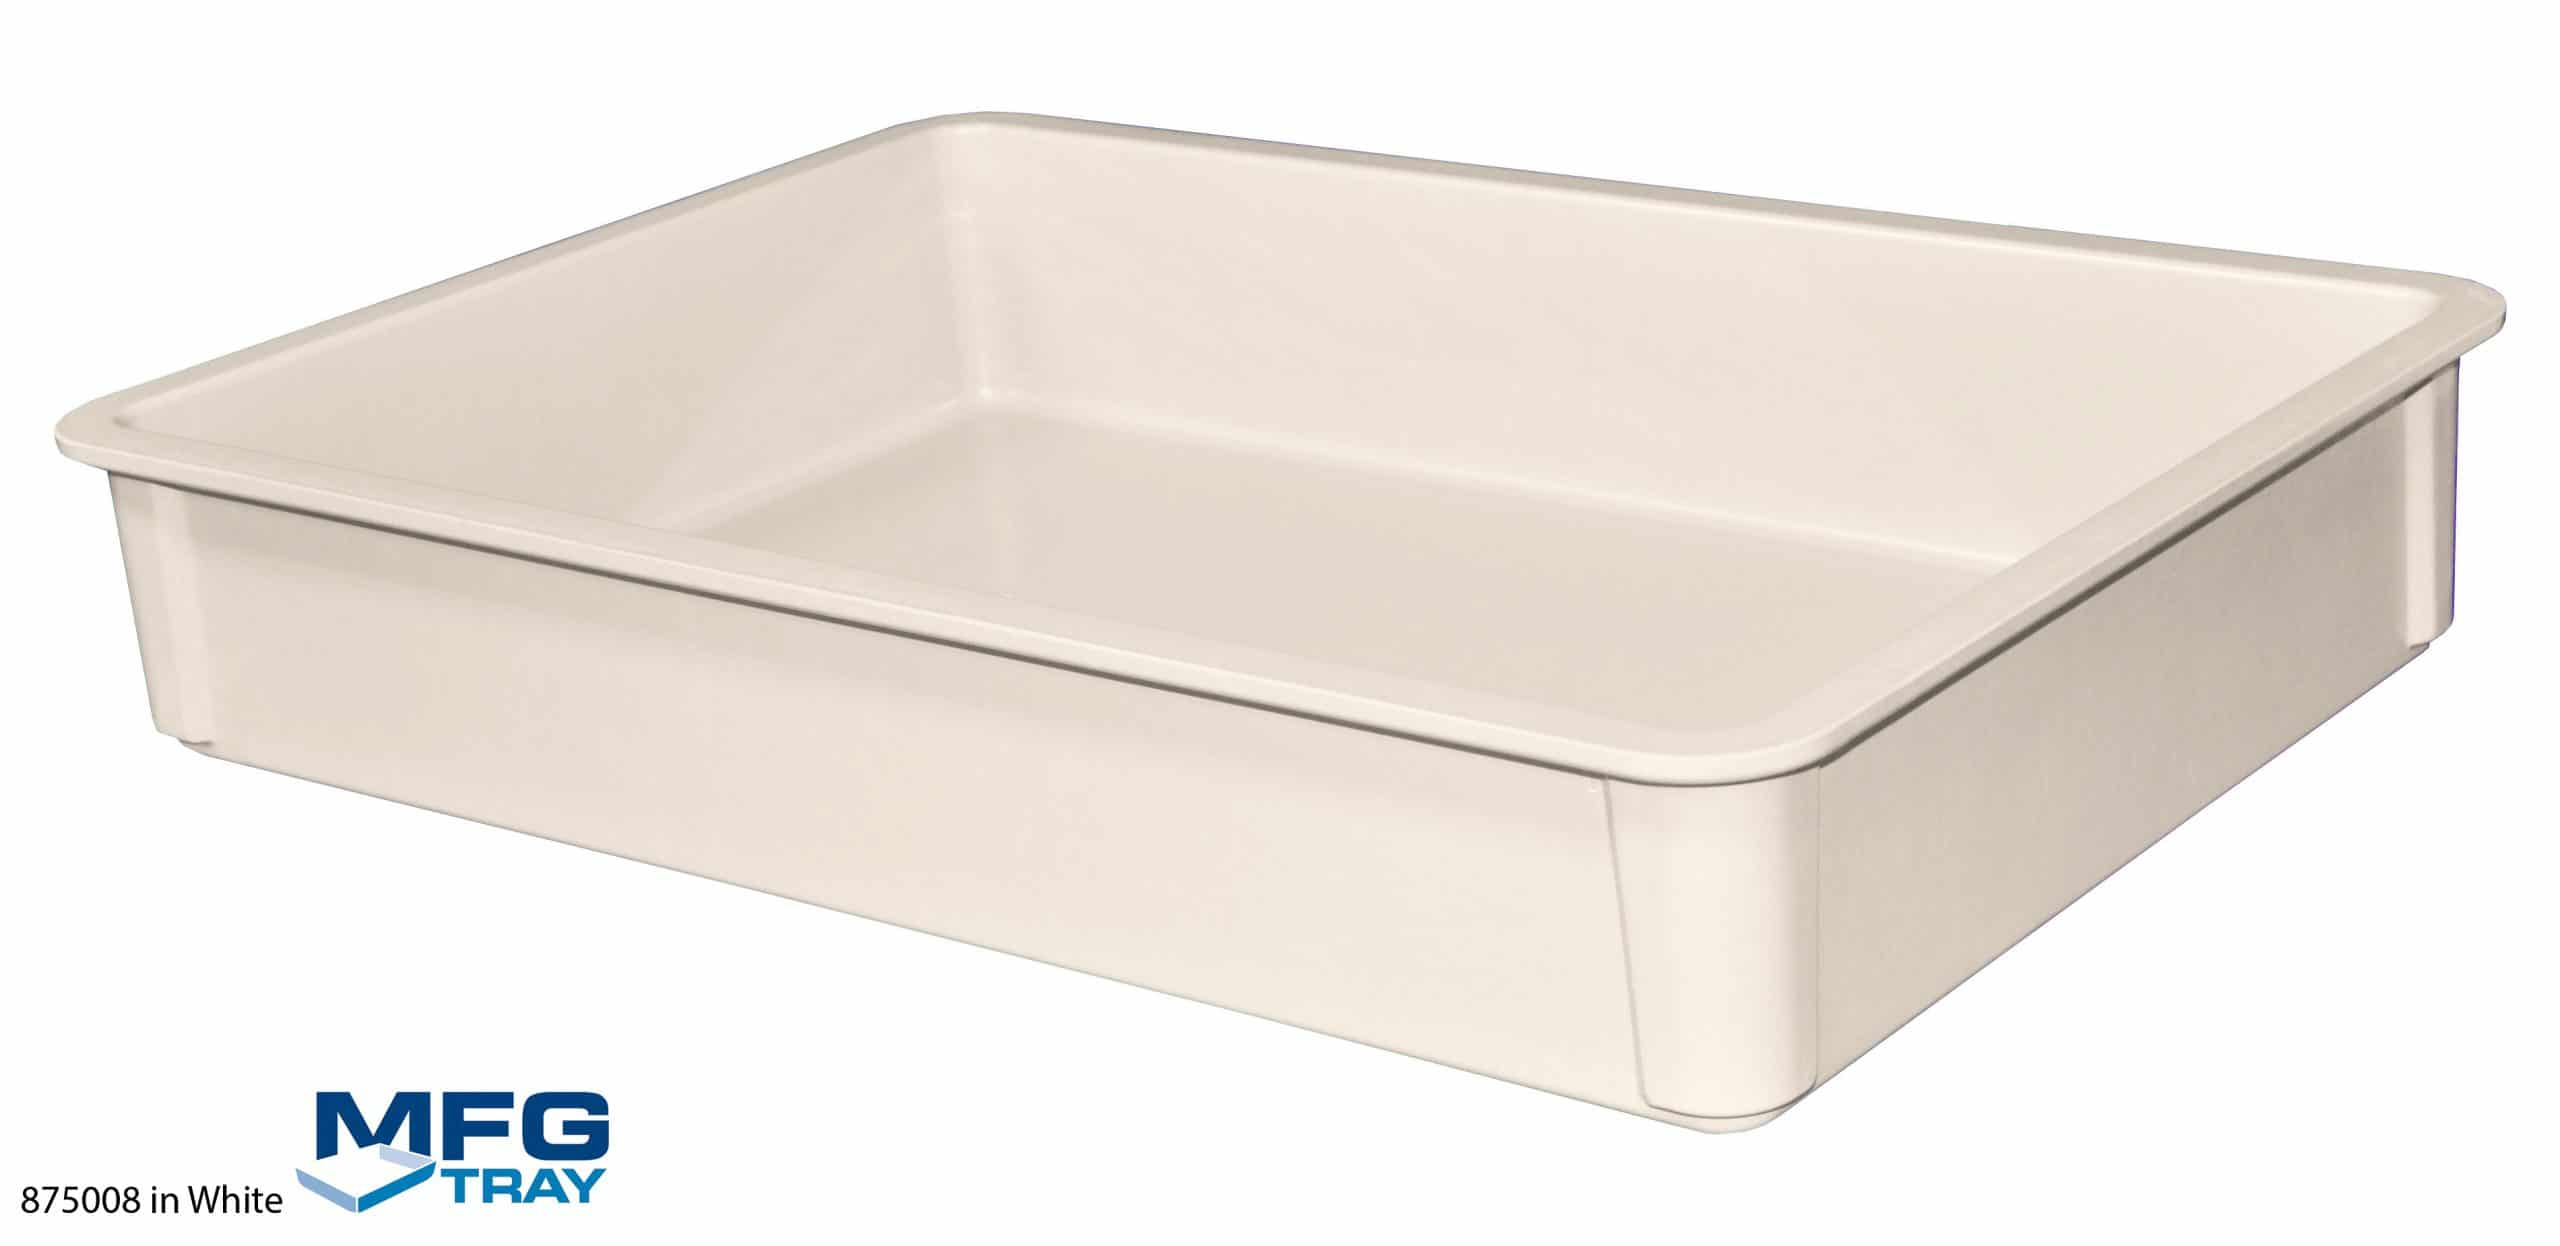 875008-White-scaled Soft Gel Drying Trays